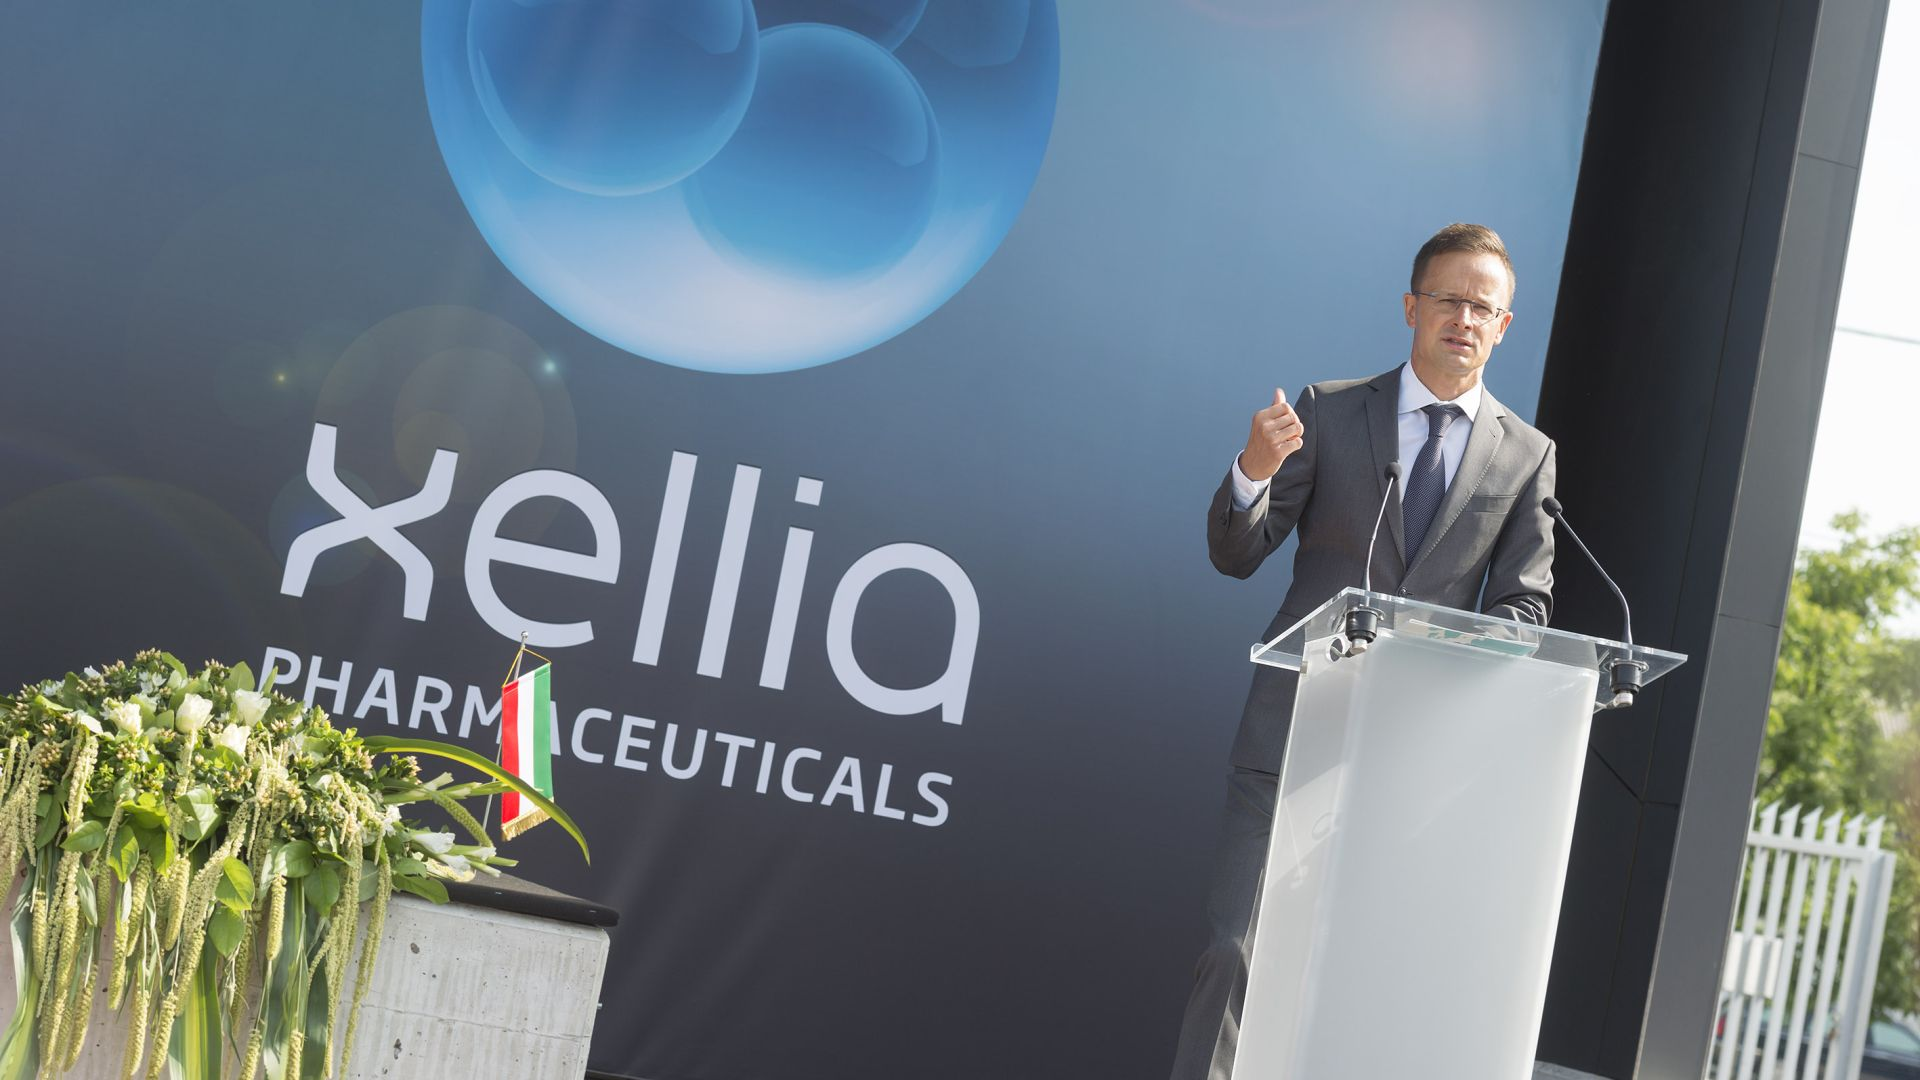 Xellia's new pharmaceutical laboratory delivered in Budapest